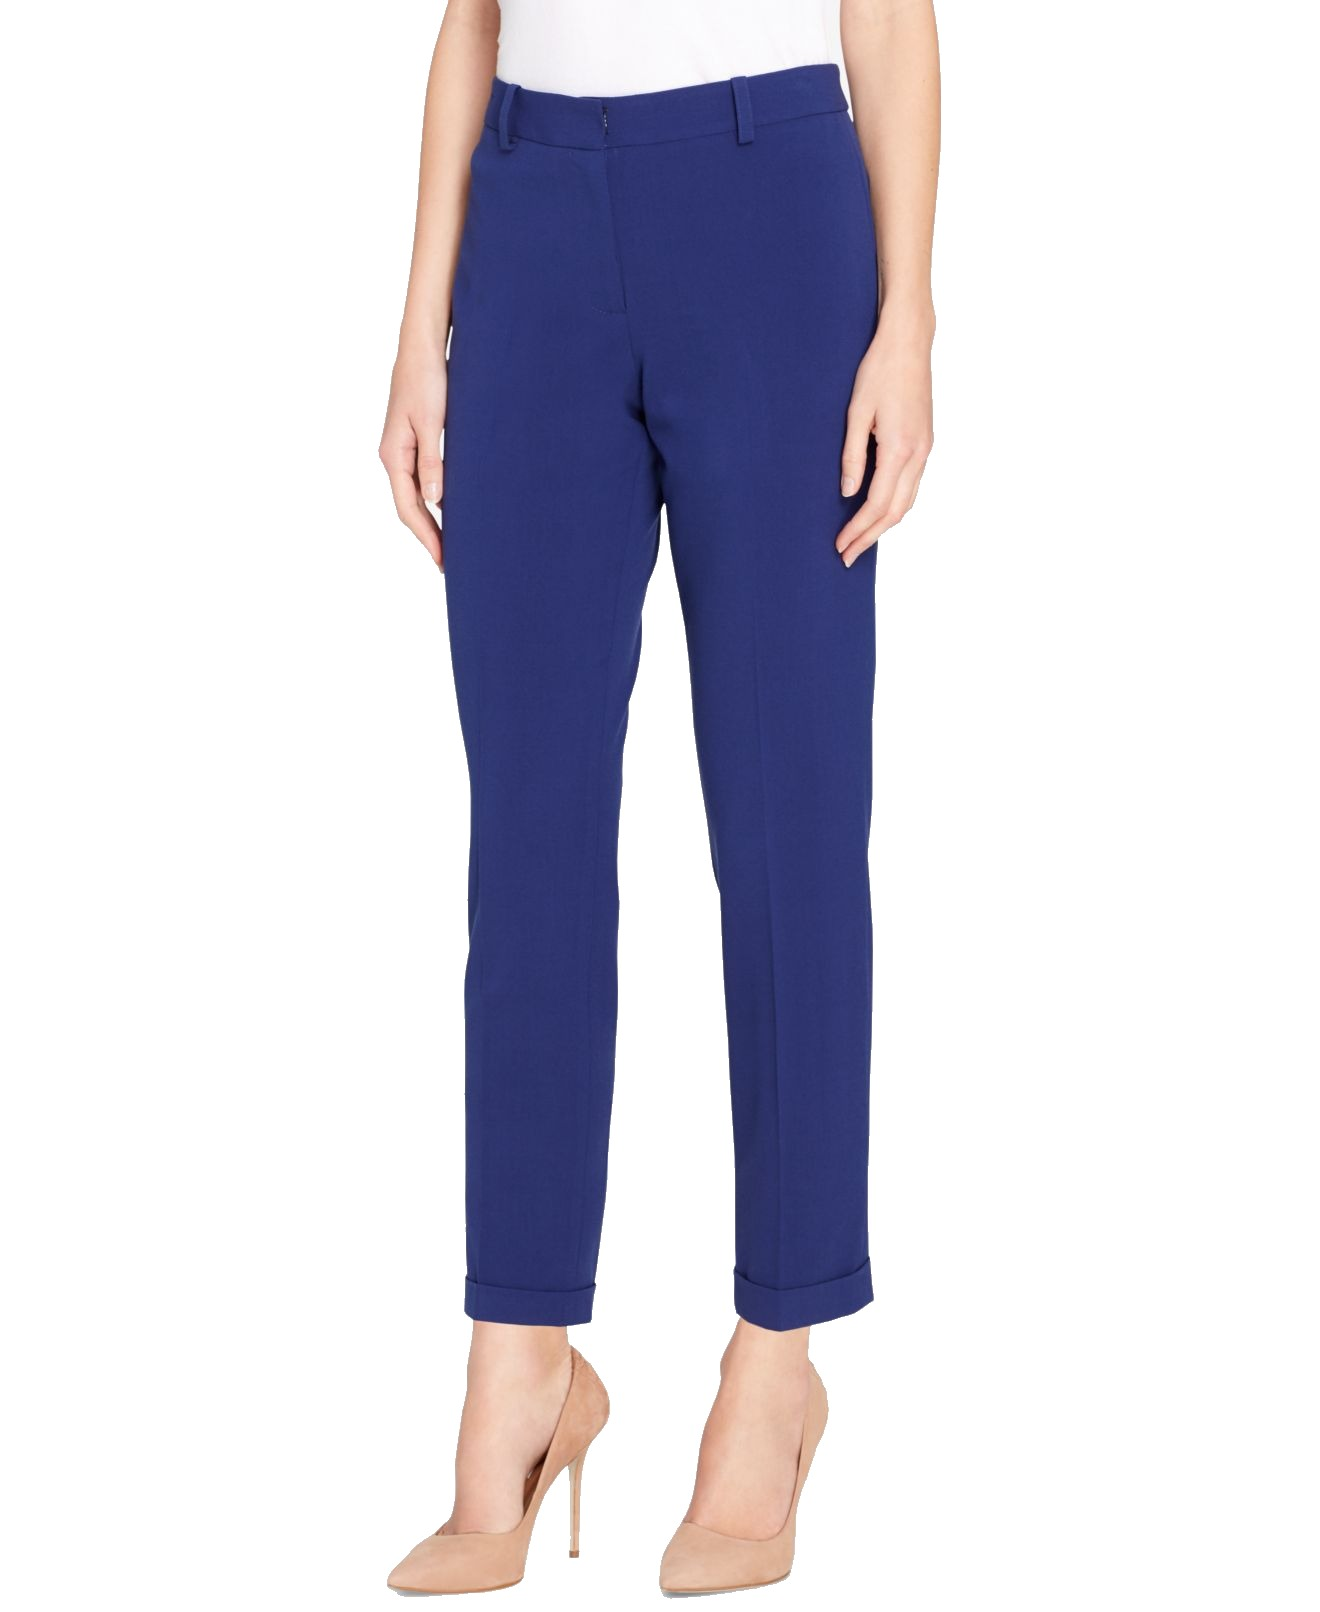 Blue Womens Ankle Flat-Front Dress Pants $89 12